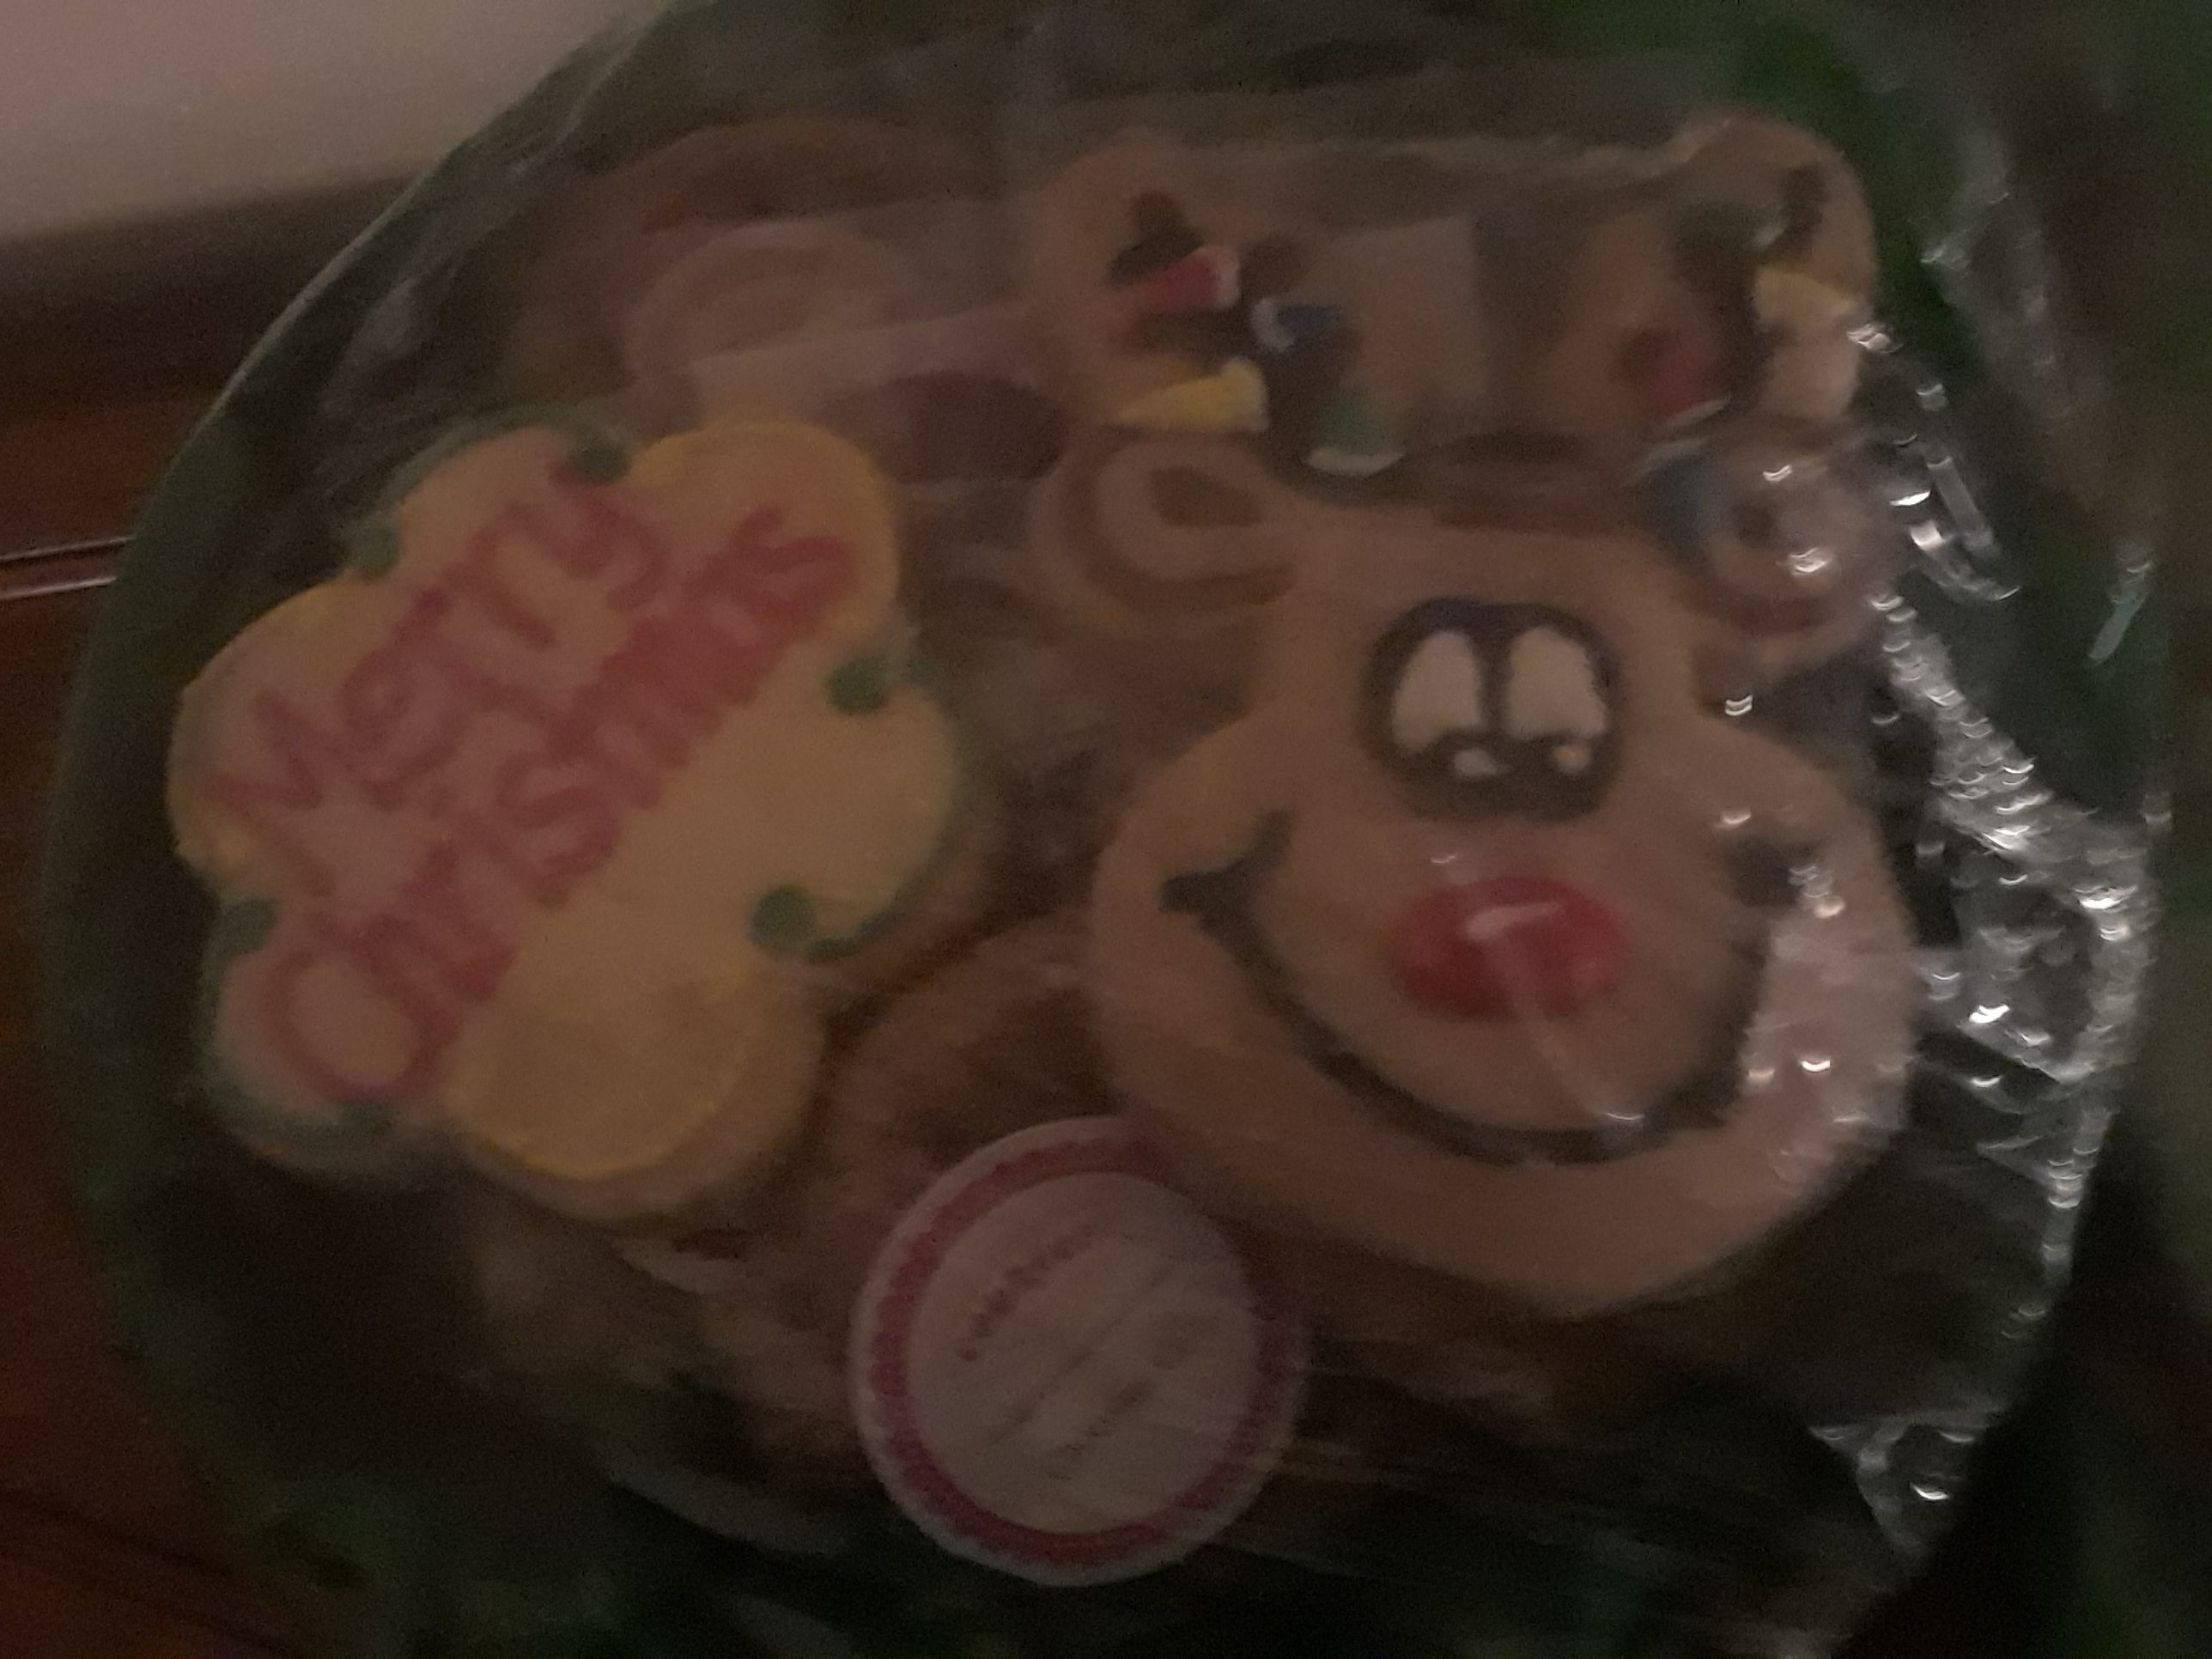 Cookies By Design Christmas Gift Baskets And Gift Trays #Review #HHG18 @cookiesbydesign